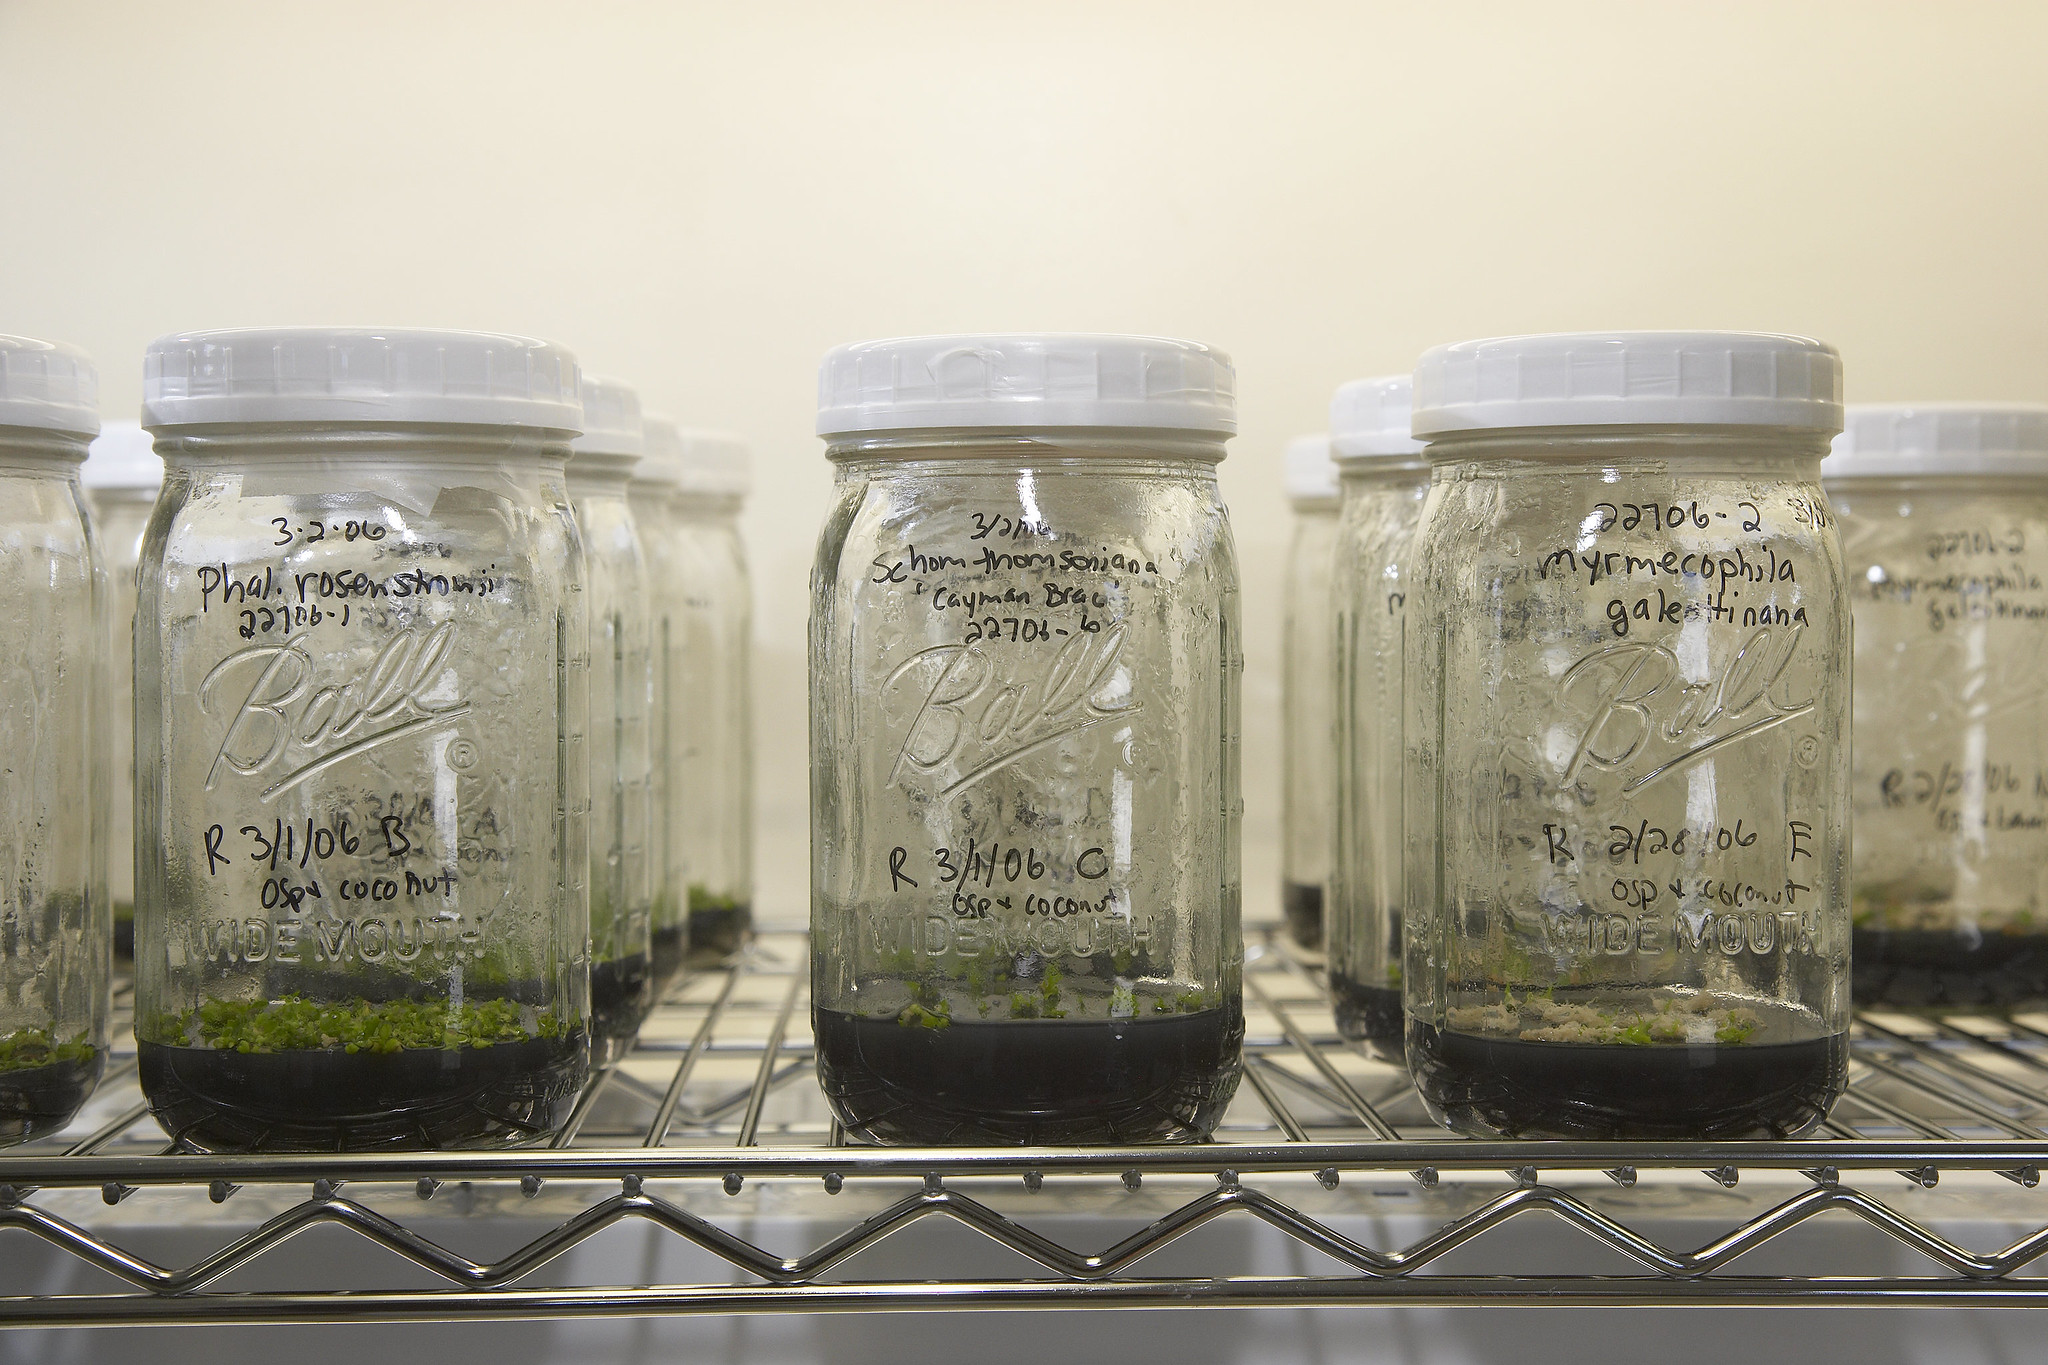 Image of micropropagation lab.